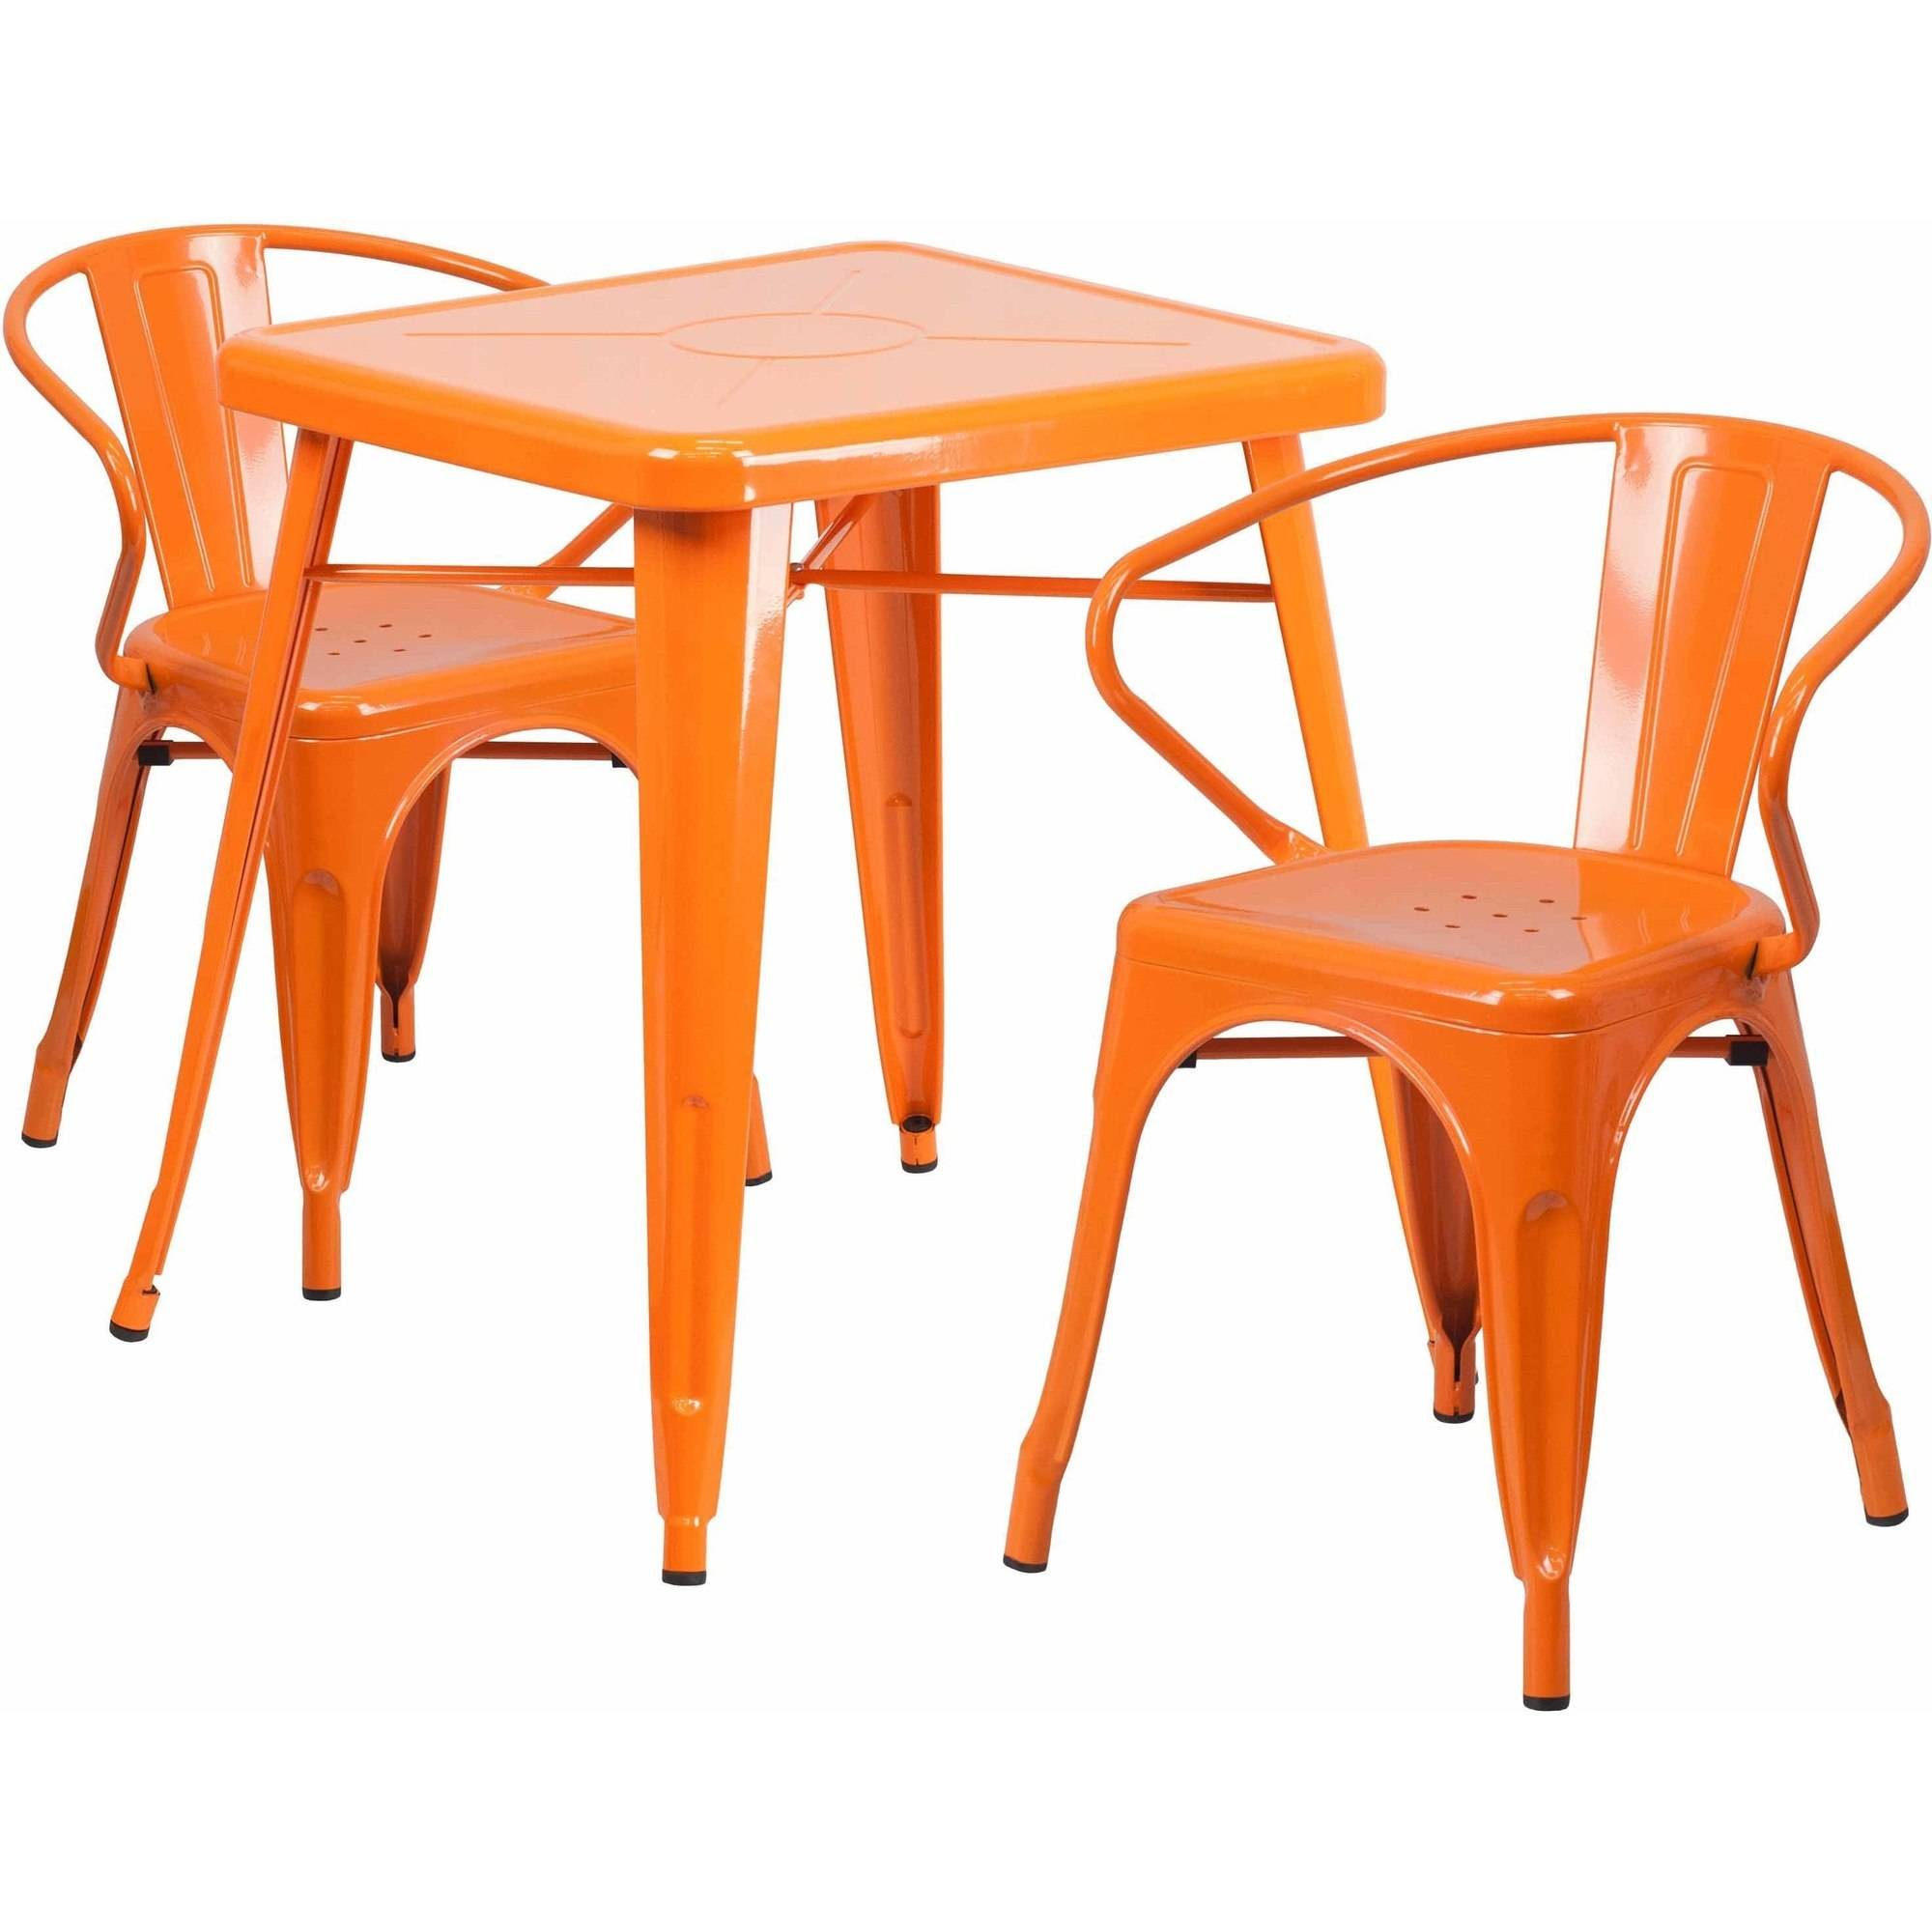 "Flash Furniture 23.75"" Square Metal Indoor-Outdoor Table Set with 2 Arm Chairs, Multiple Colors"